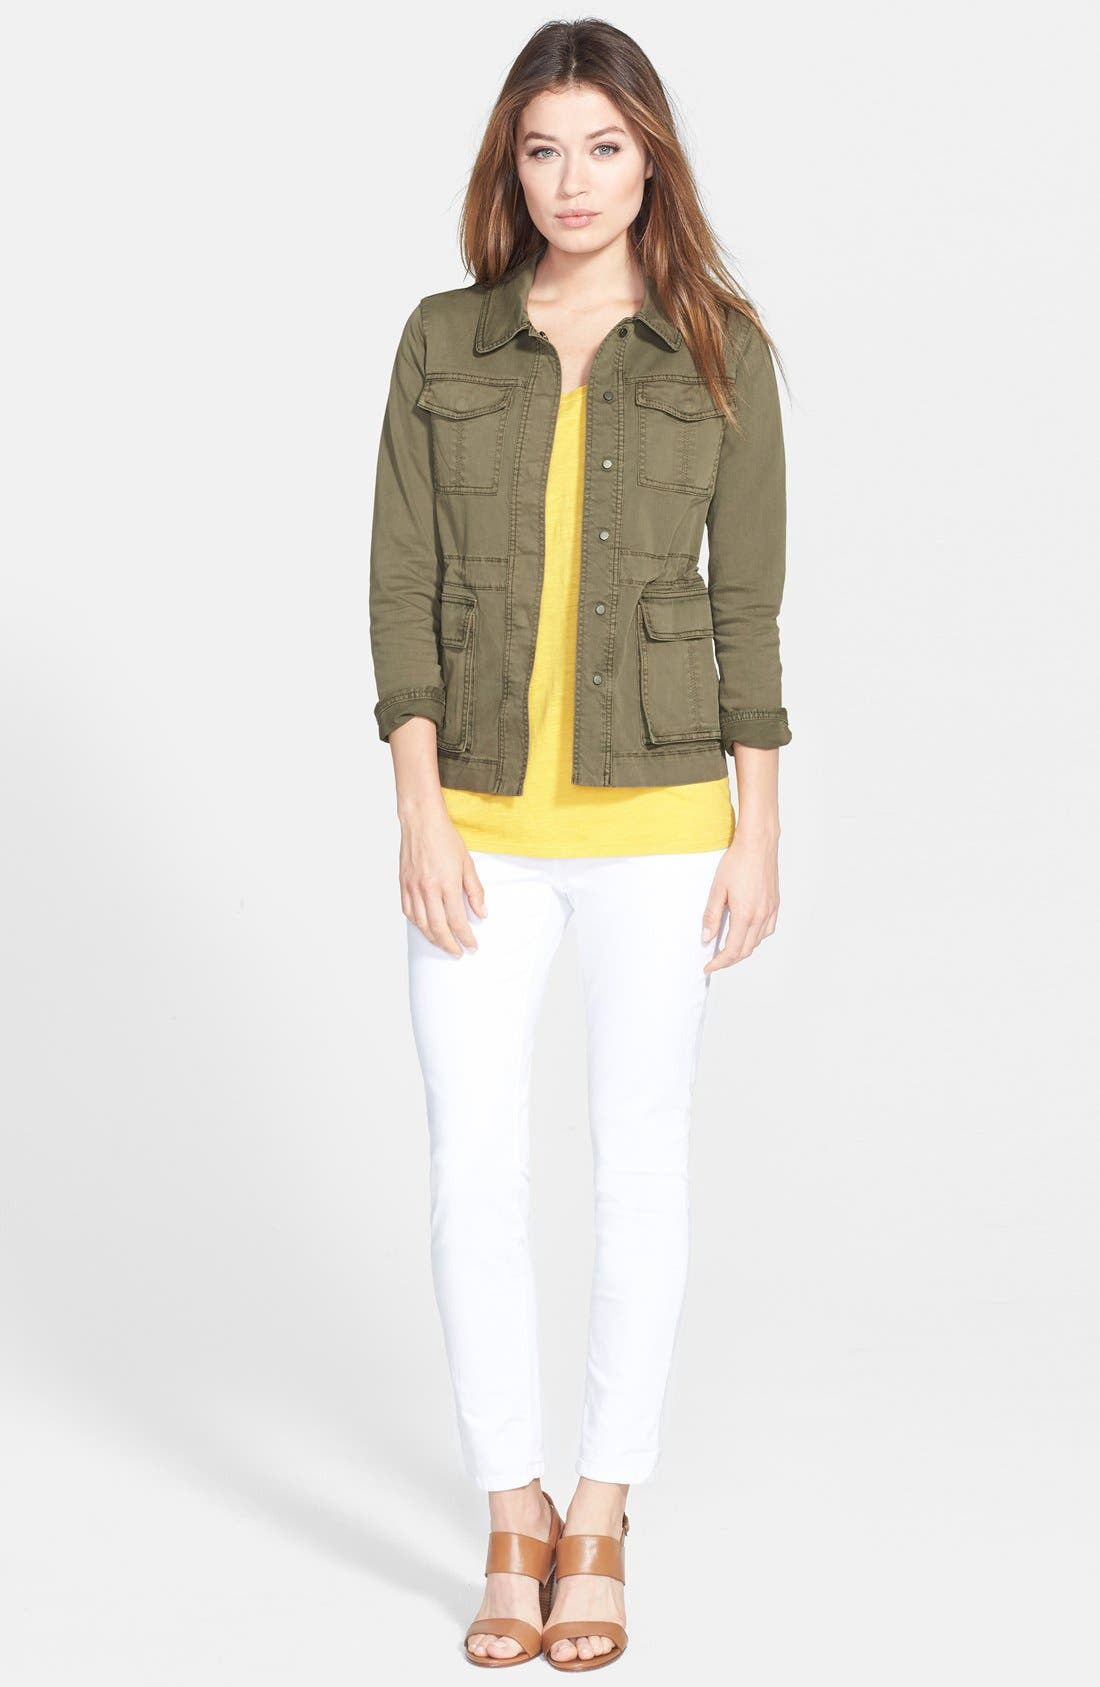 EILEEN FISHER, The Fisher Project Classic Collar Stretch Twill Jacket, Alternate thumbnail 4, color, 301